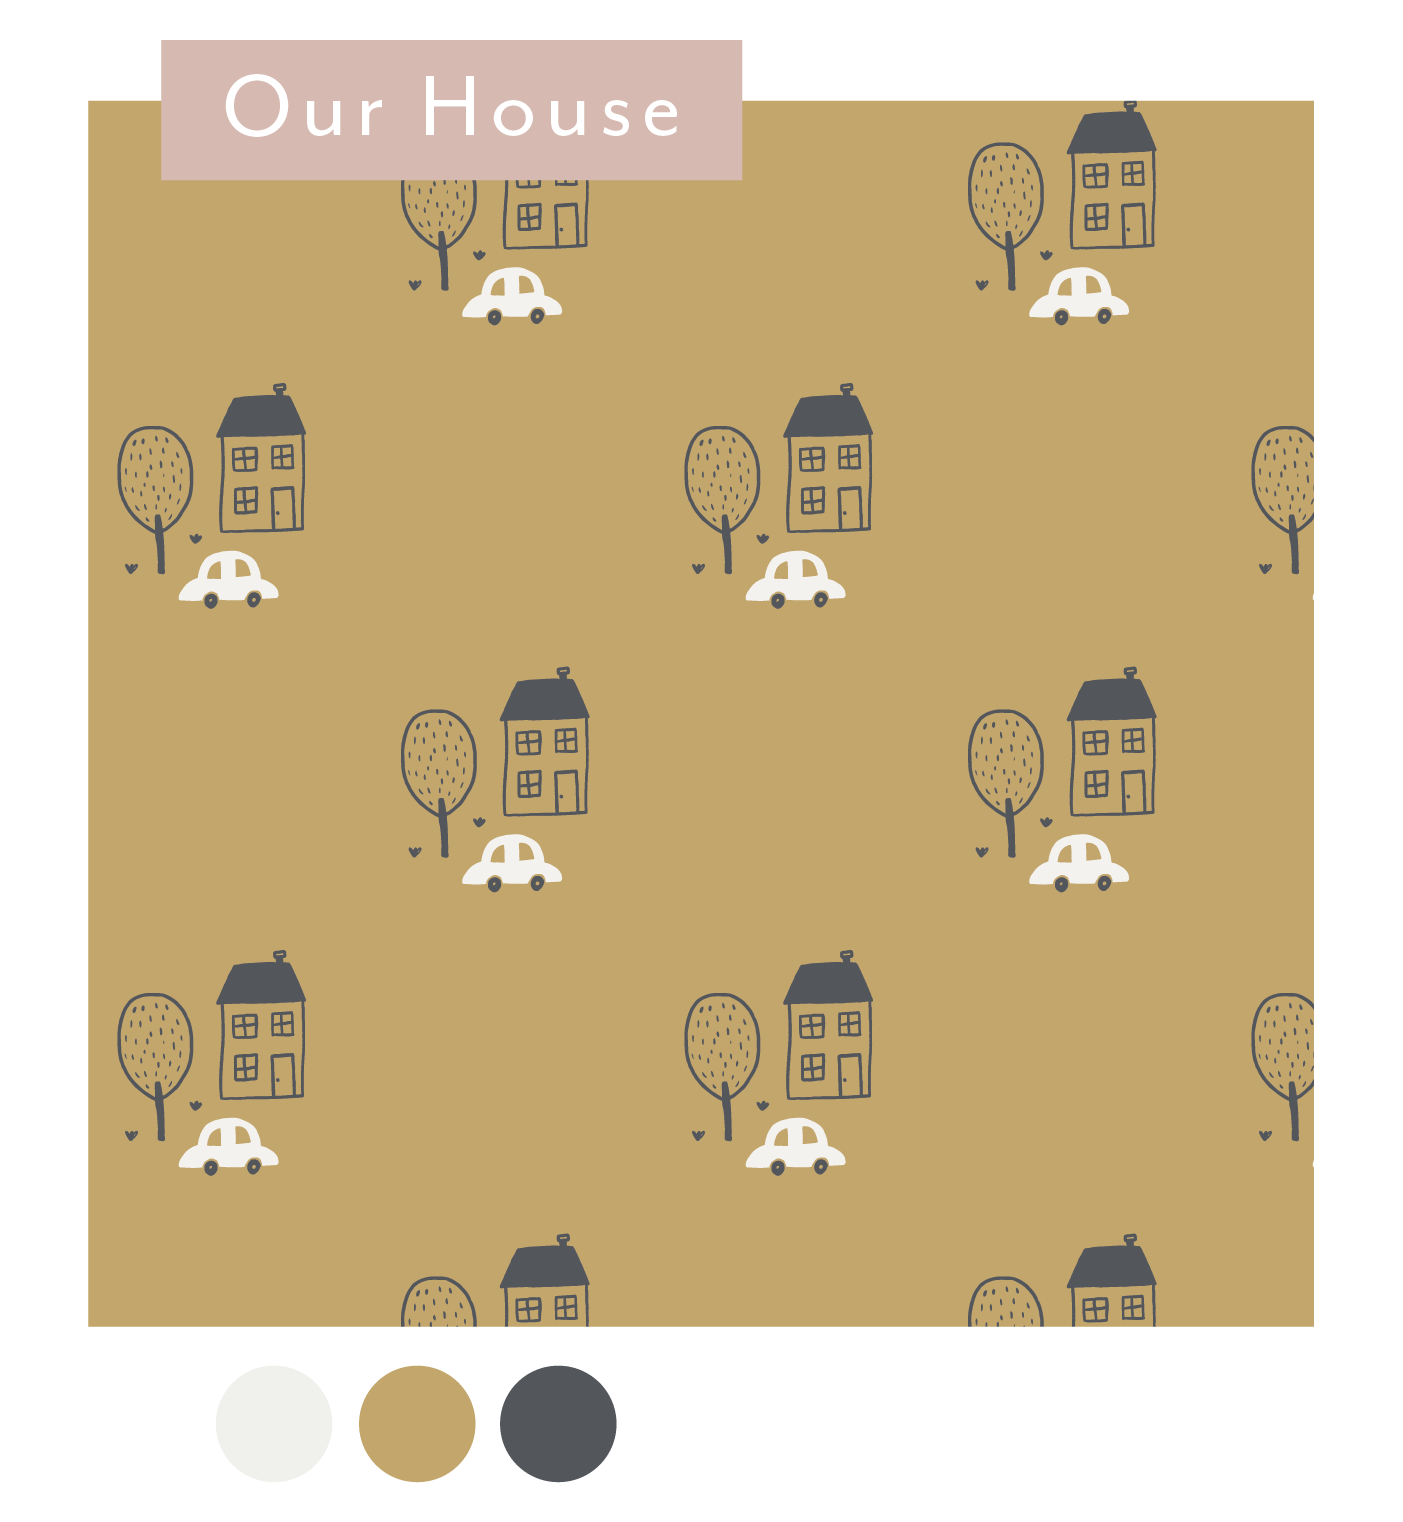 Freelance-childrenswear-designer-lisa-claire-stewart-for-kidsbury-surface-pattern-design-02